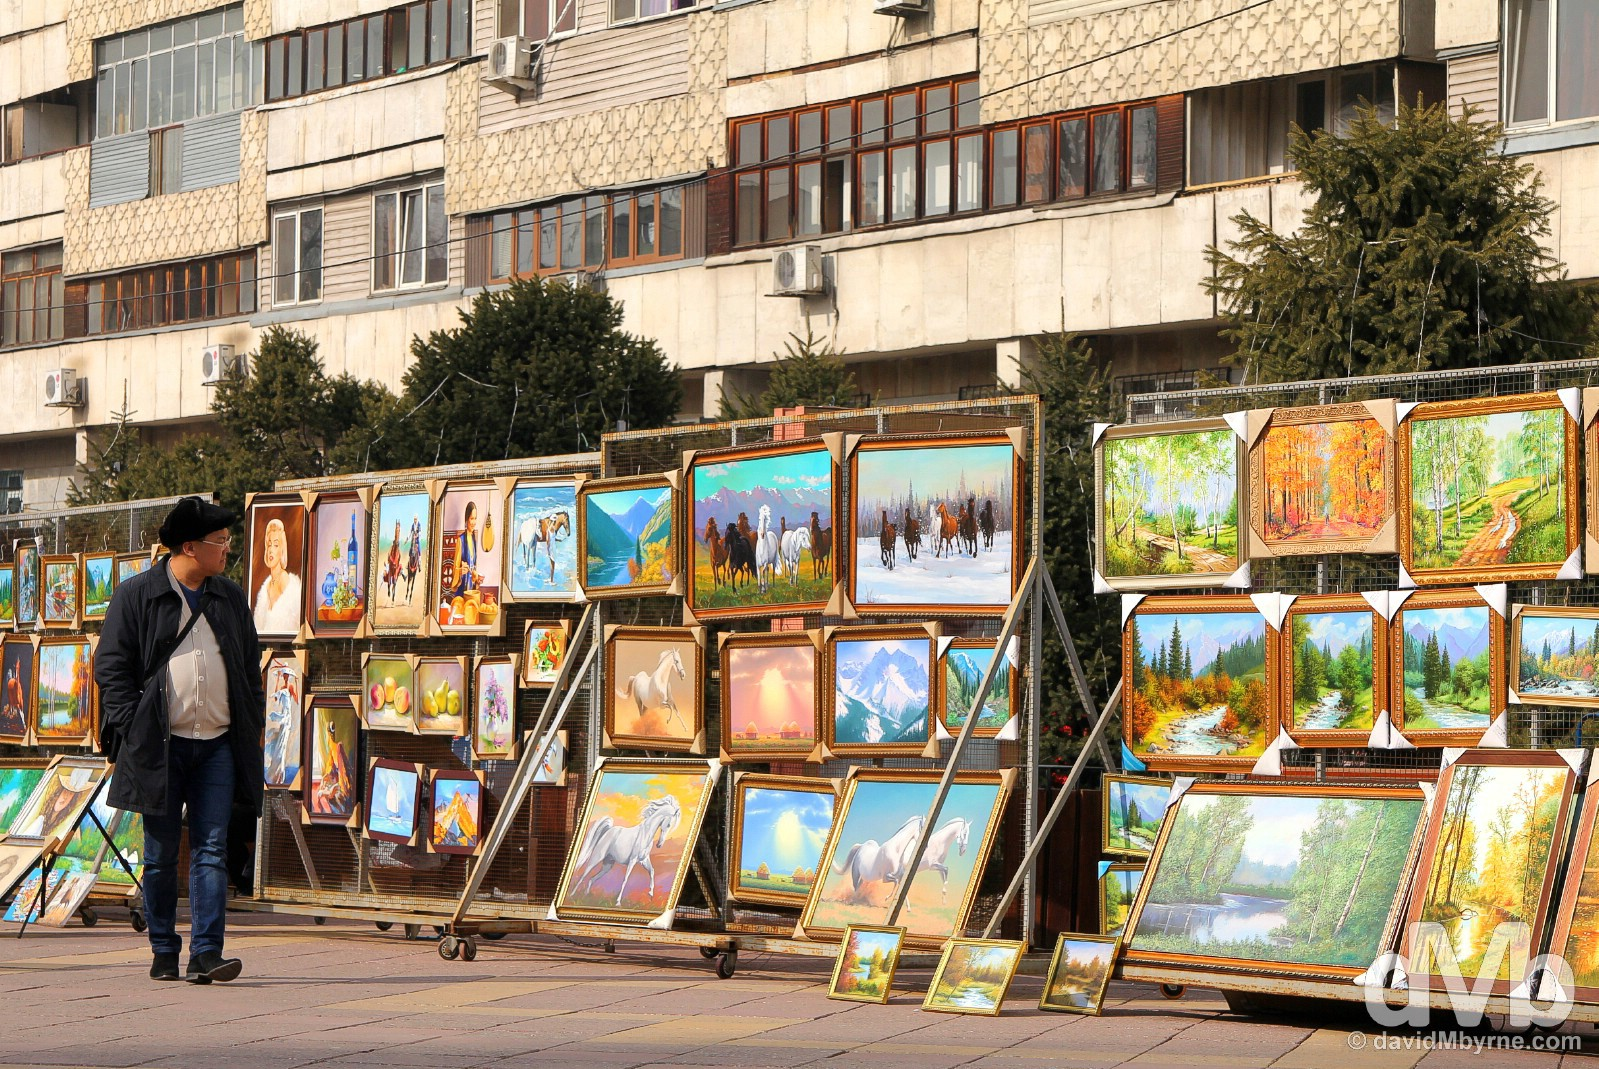 Art for sale on Zhibek Zholy in central Almaty, Kazakhstan. February 15, 2015.